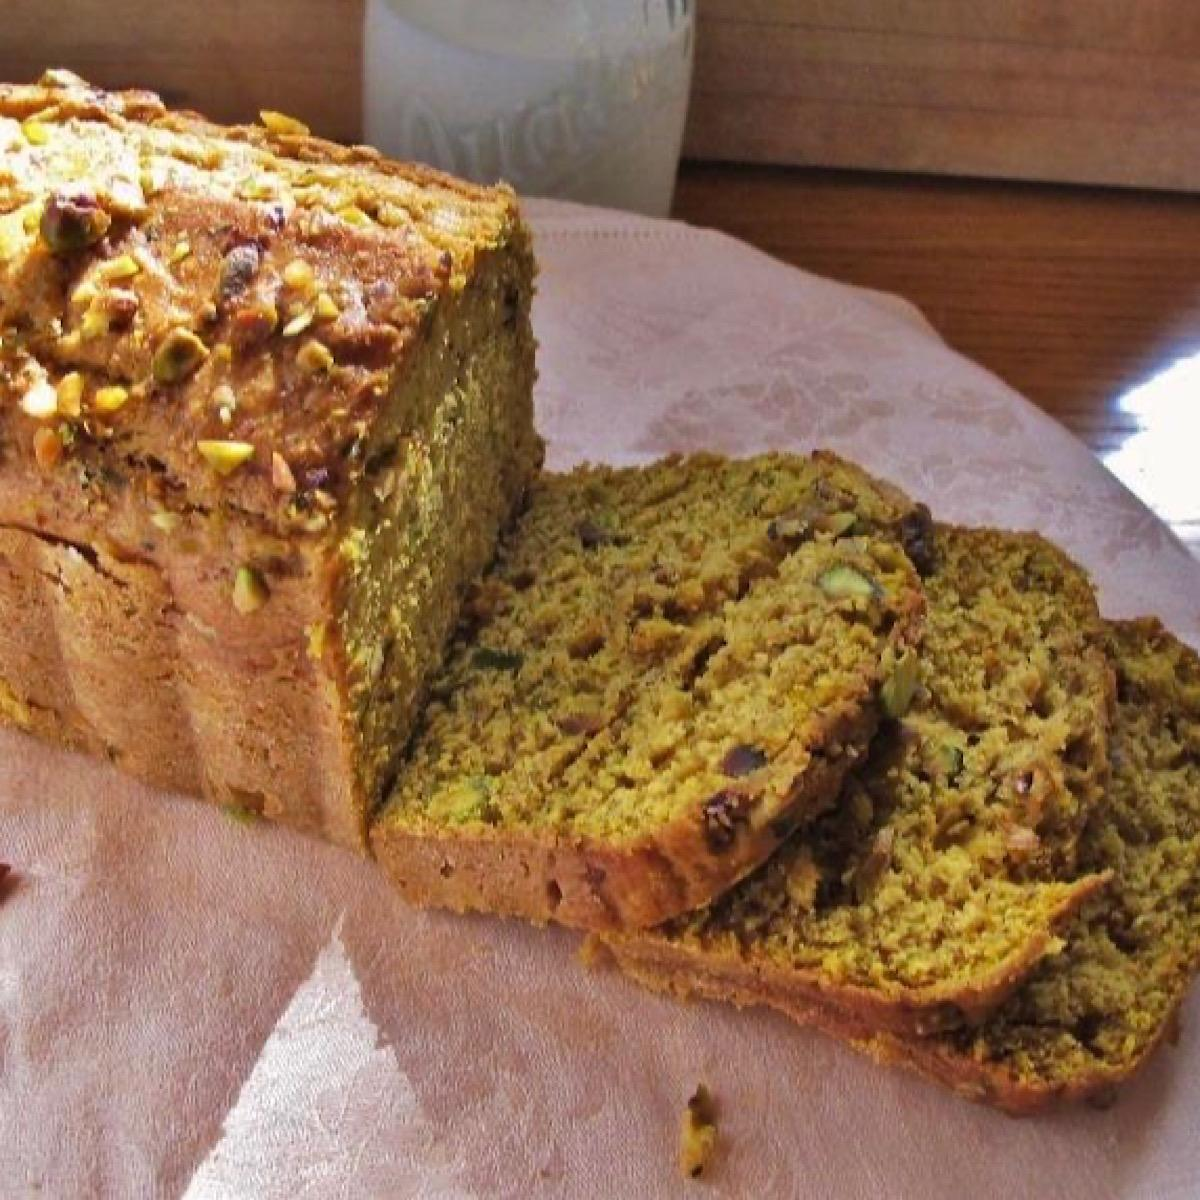 Sliced pieces of Pumpkin Amaretto loaf